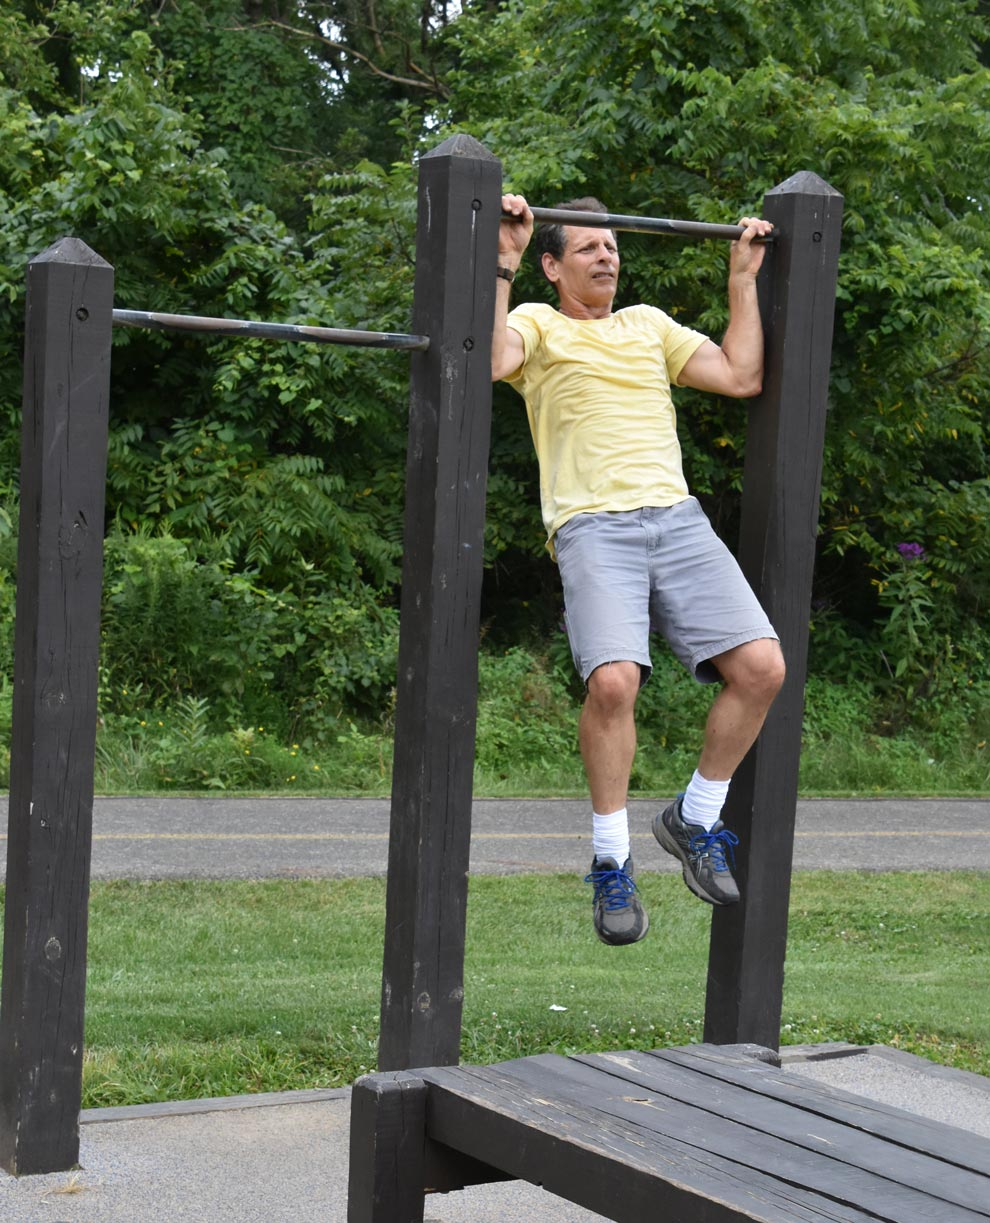 A man uses the pull-up bars at Sharon Woods' fitness station.